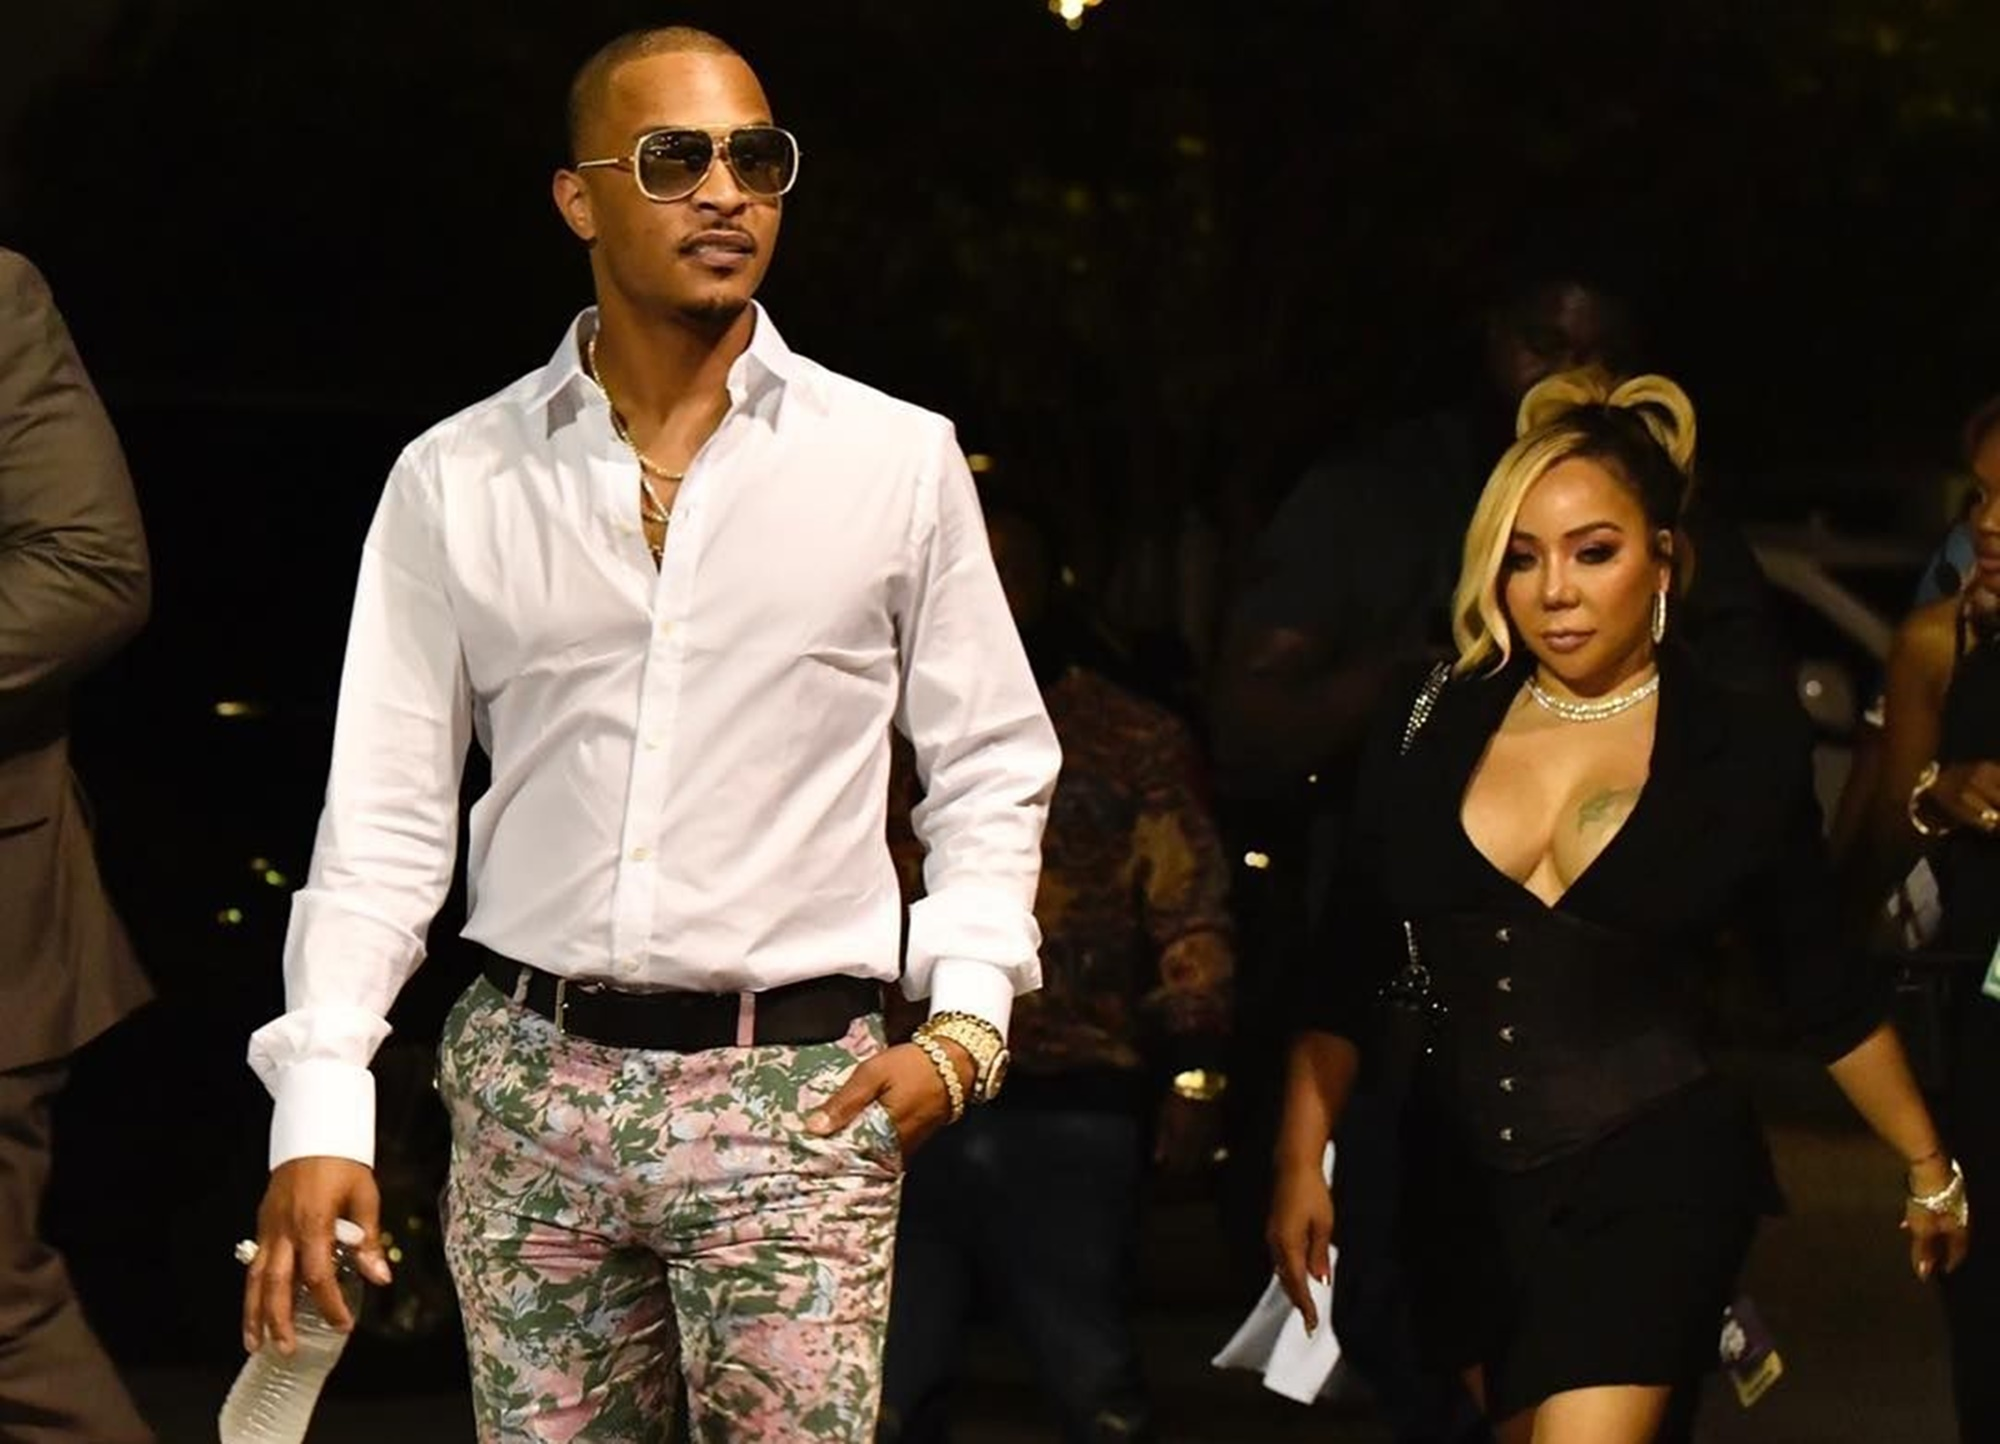 T.I. Tiny Harris Cheating Allegations